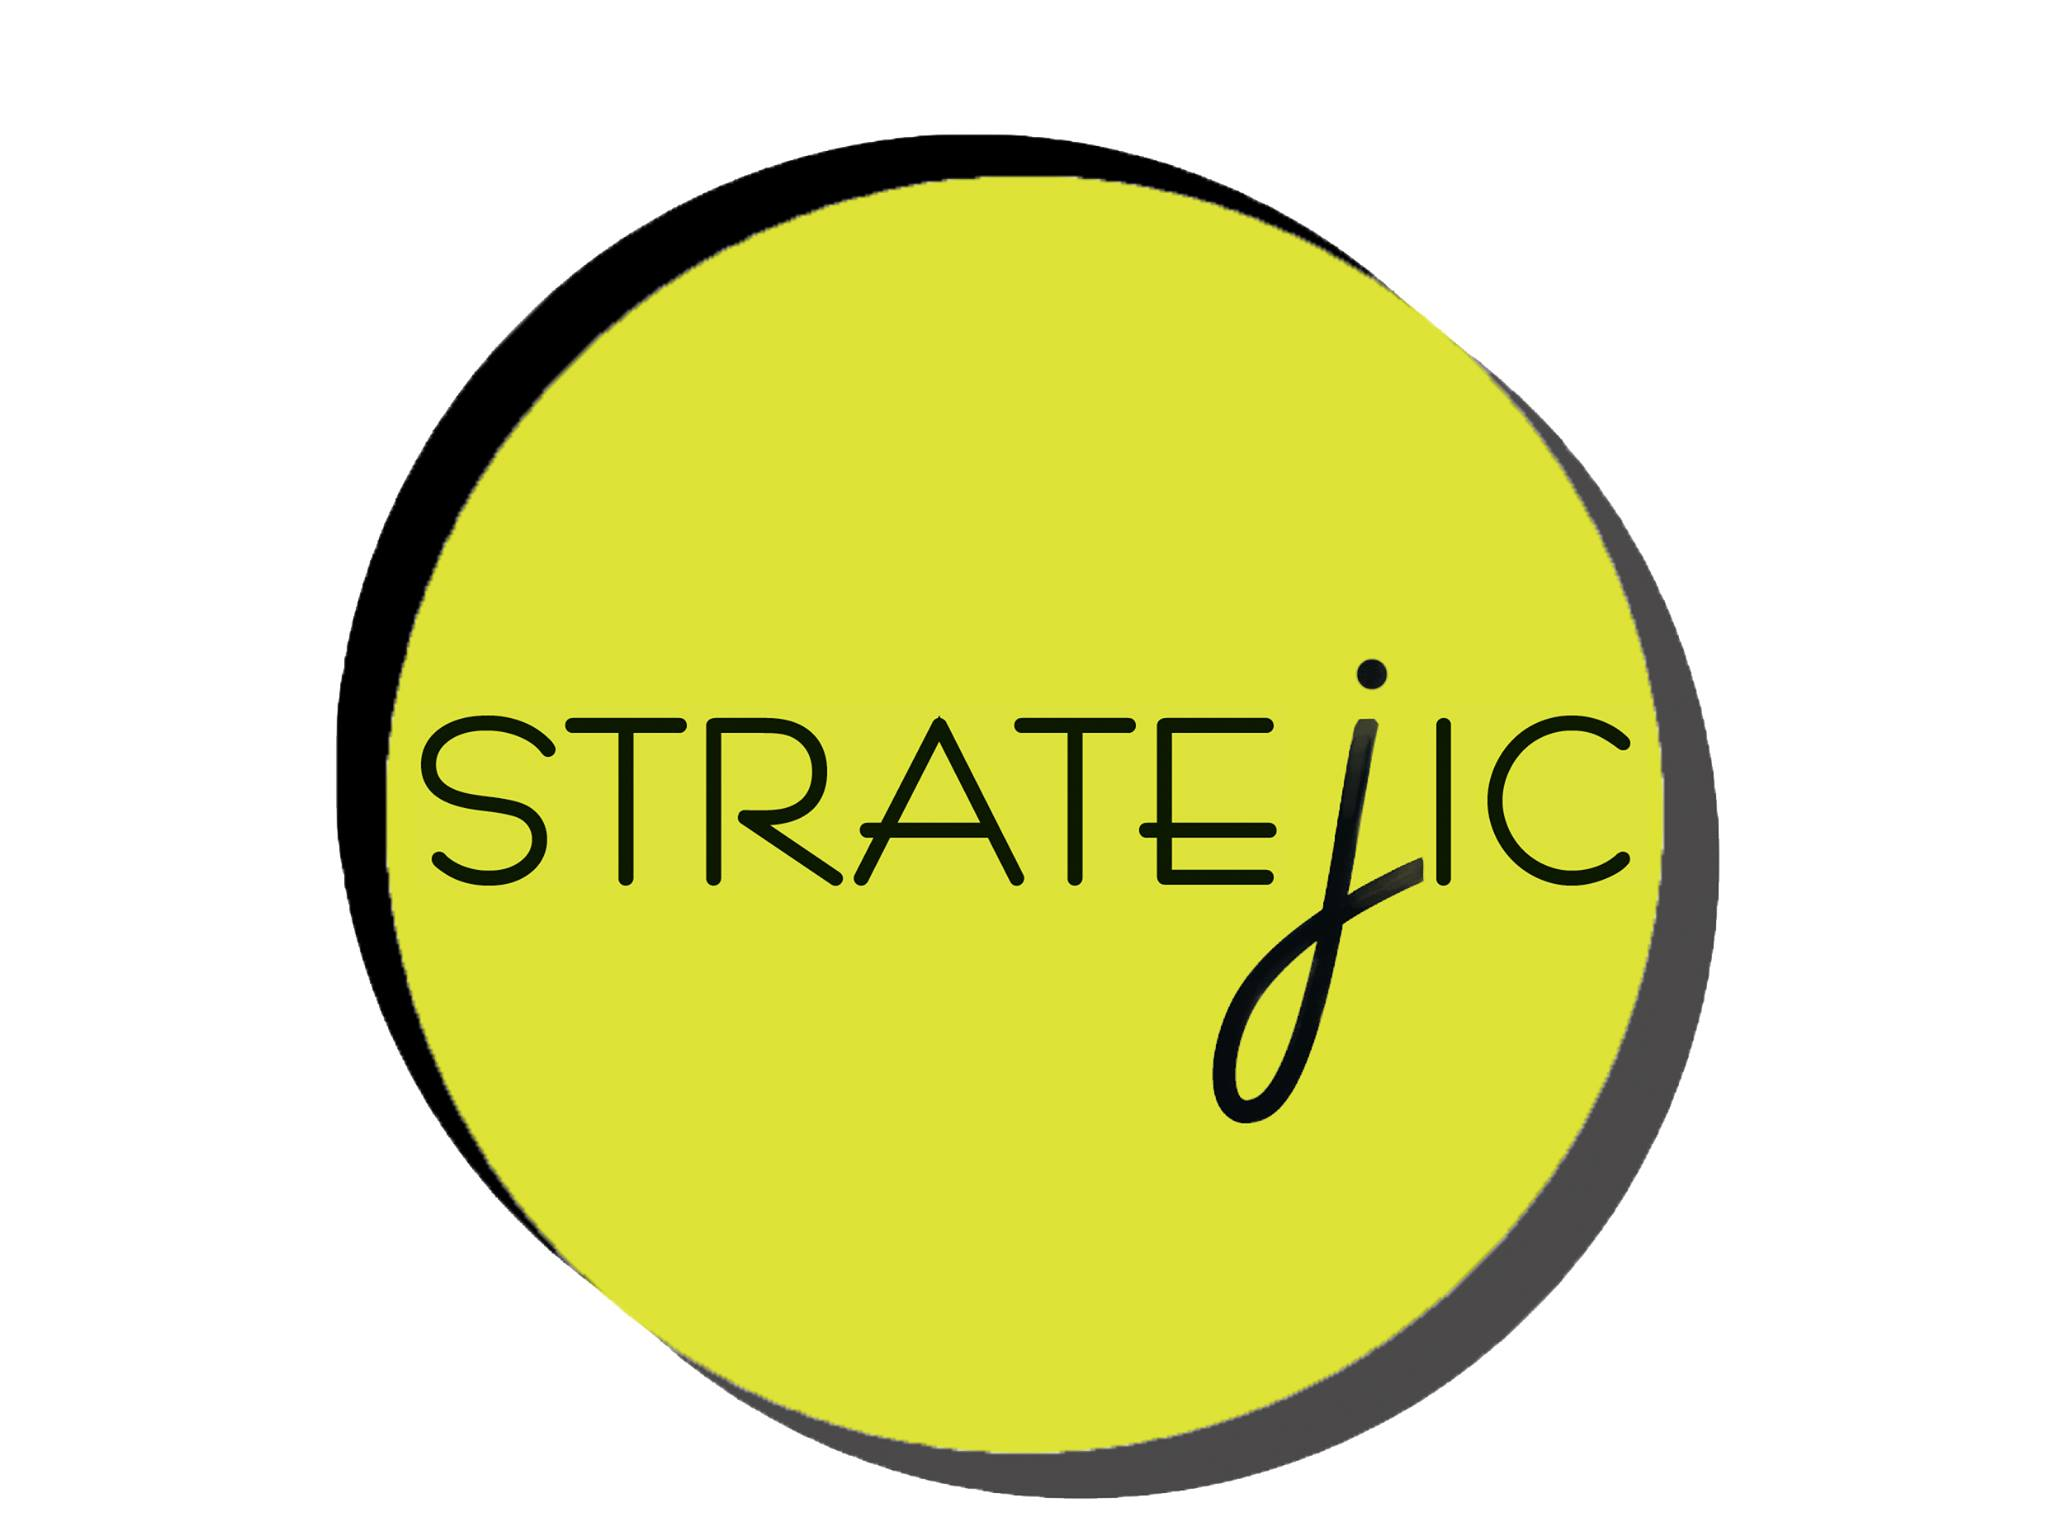 Stratejic